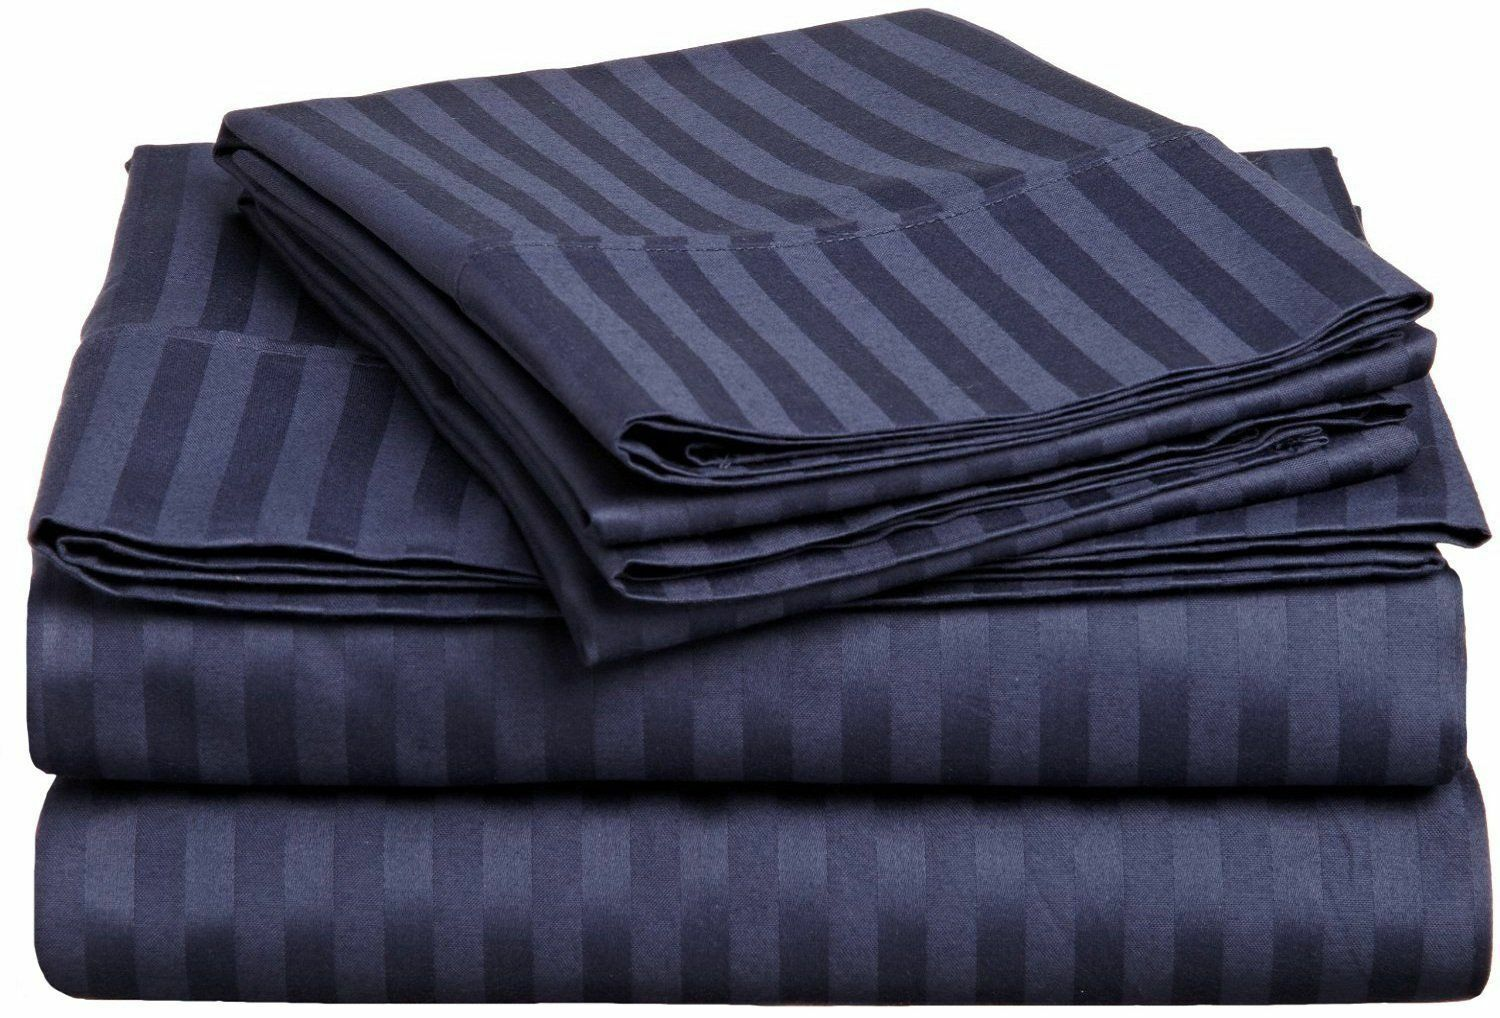 Navy Stripe Bed Sheet Set All Extra Deep Pkt & Größes 1000 TC Pure Egypt Cotton